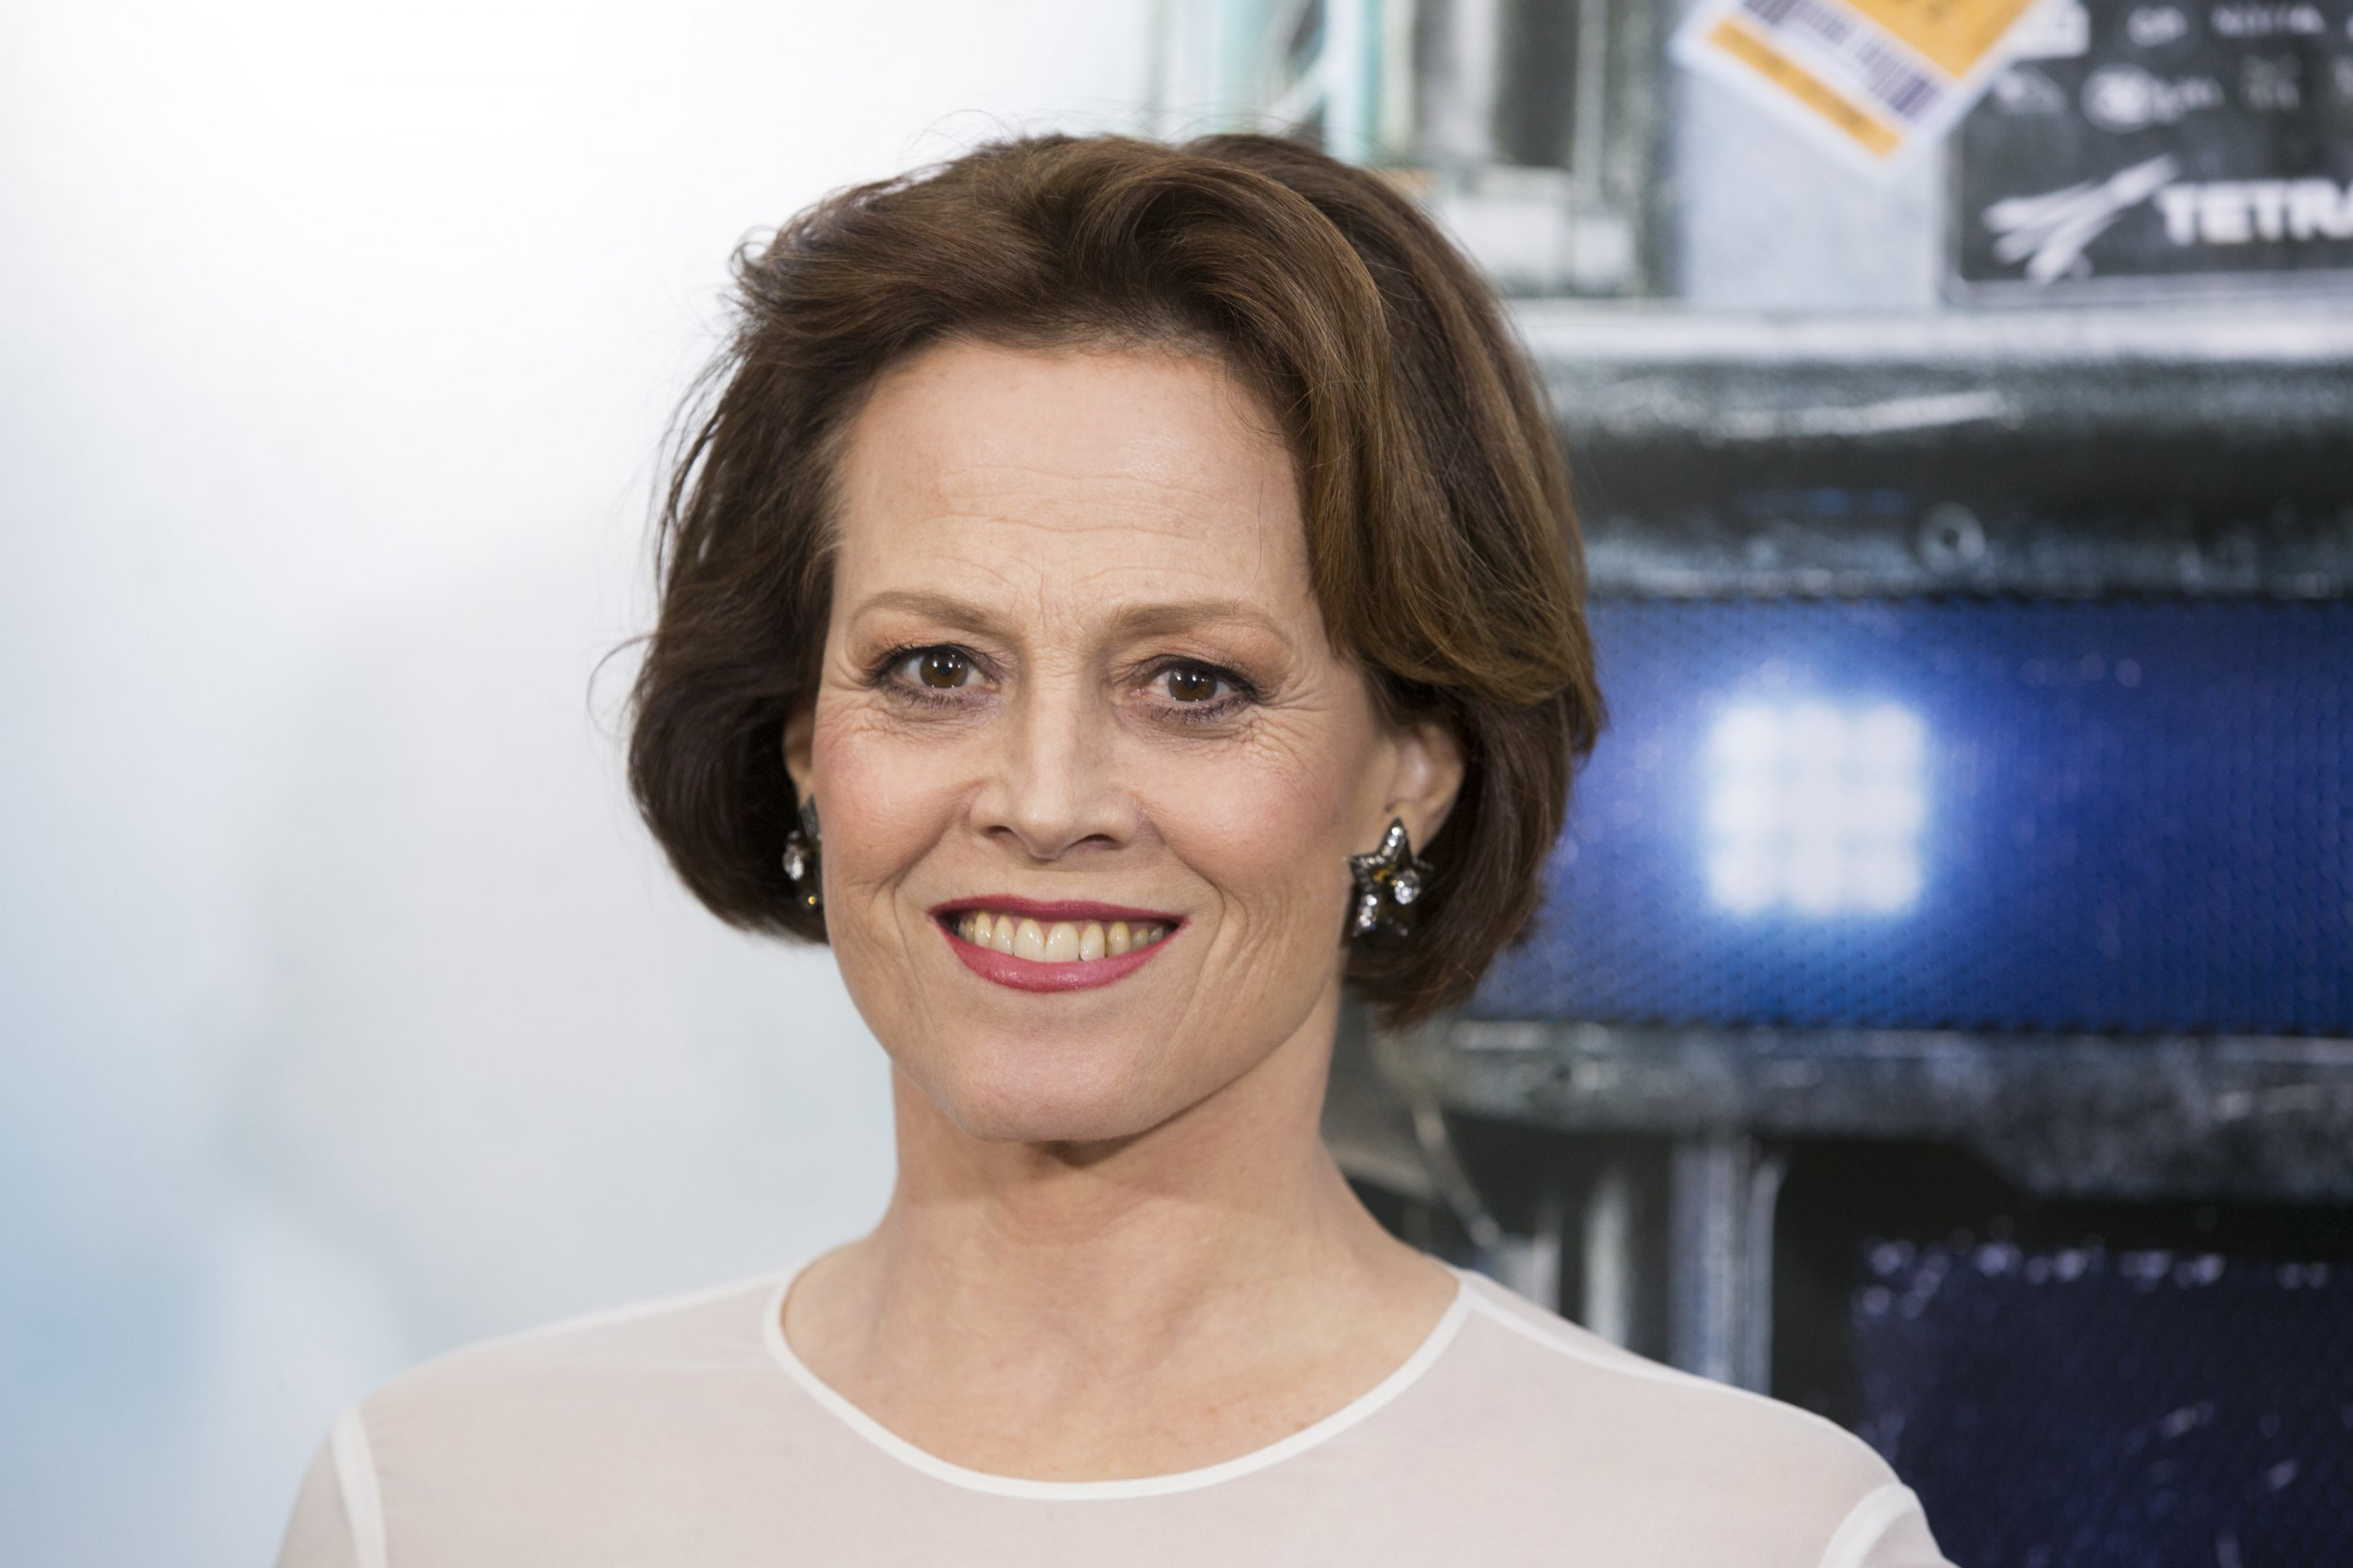 Sigourney Weaver, actor and concerned citizen